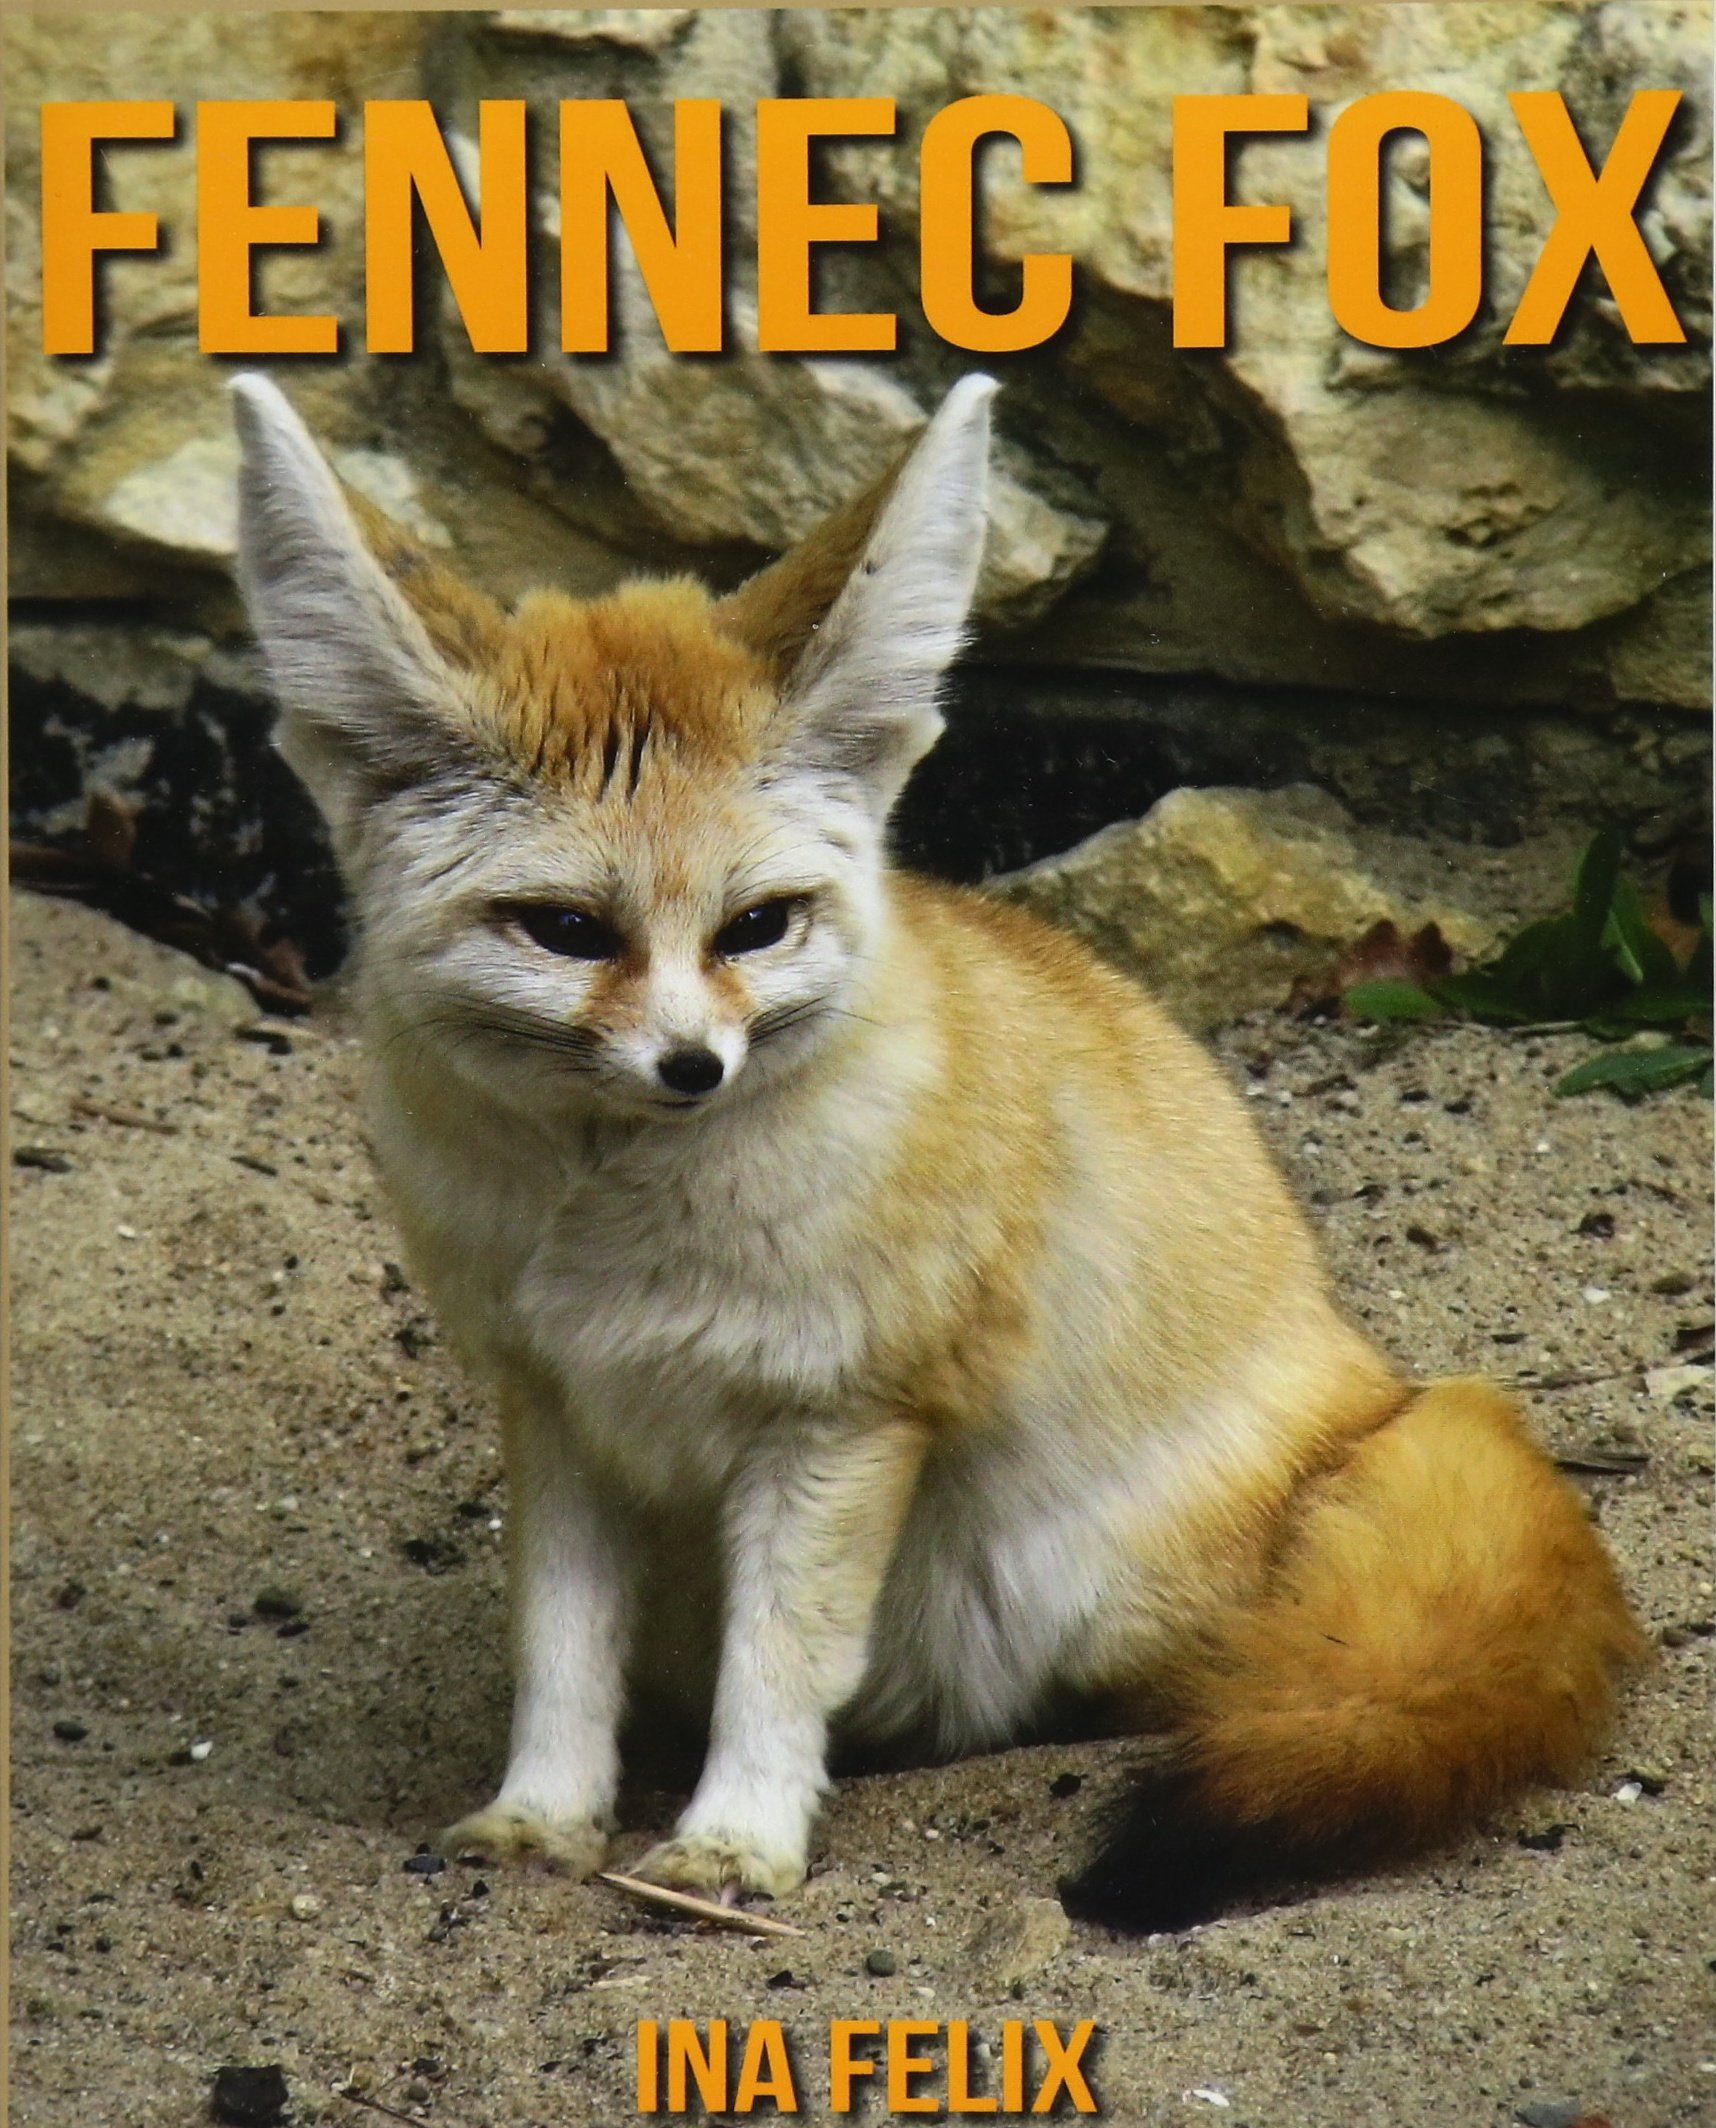 Download Fennec fox: Children Book of Fun Facts & Amazing Photos on Animals in Nature - A Wonderful Fennec fox Book for Kids aged 3-7 PDF